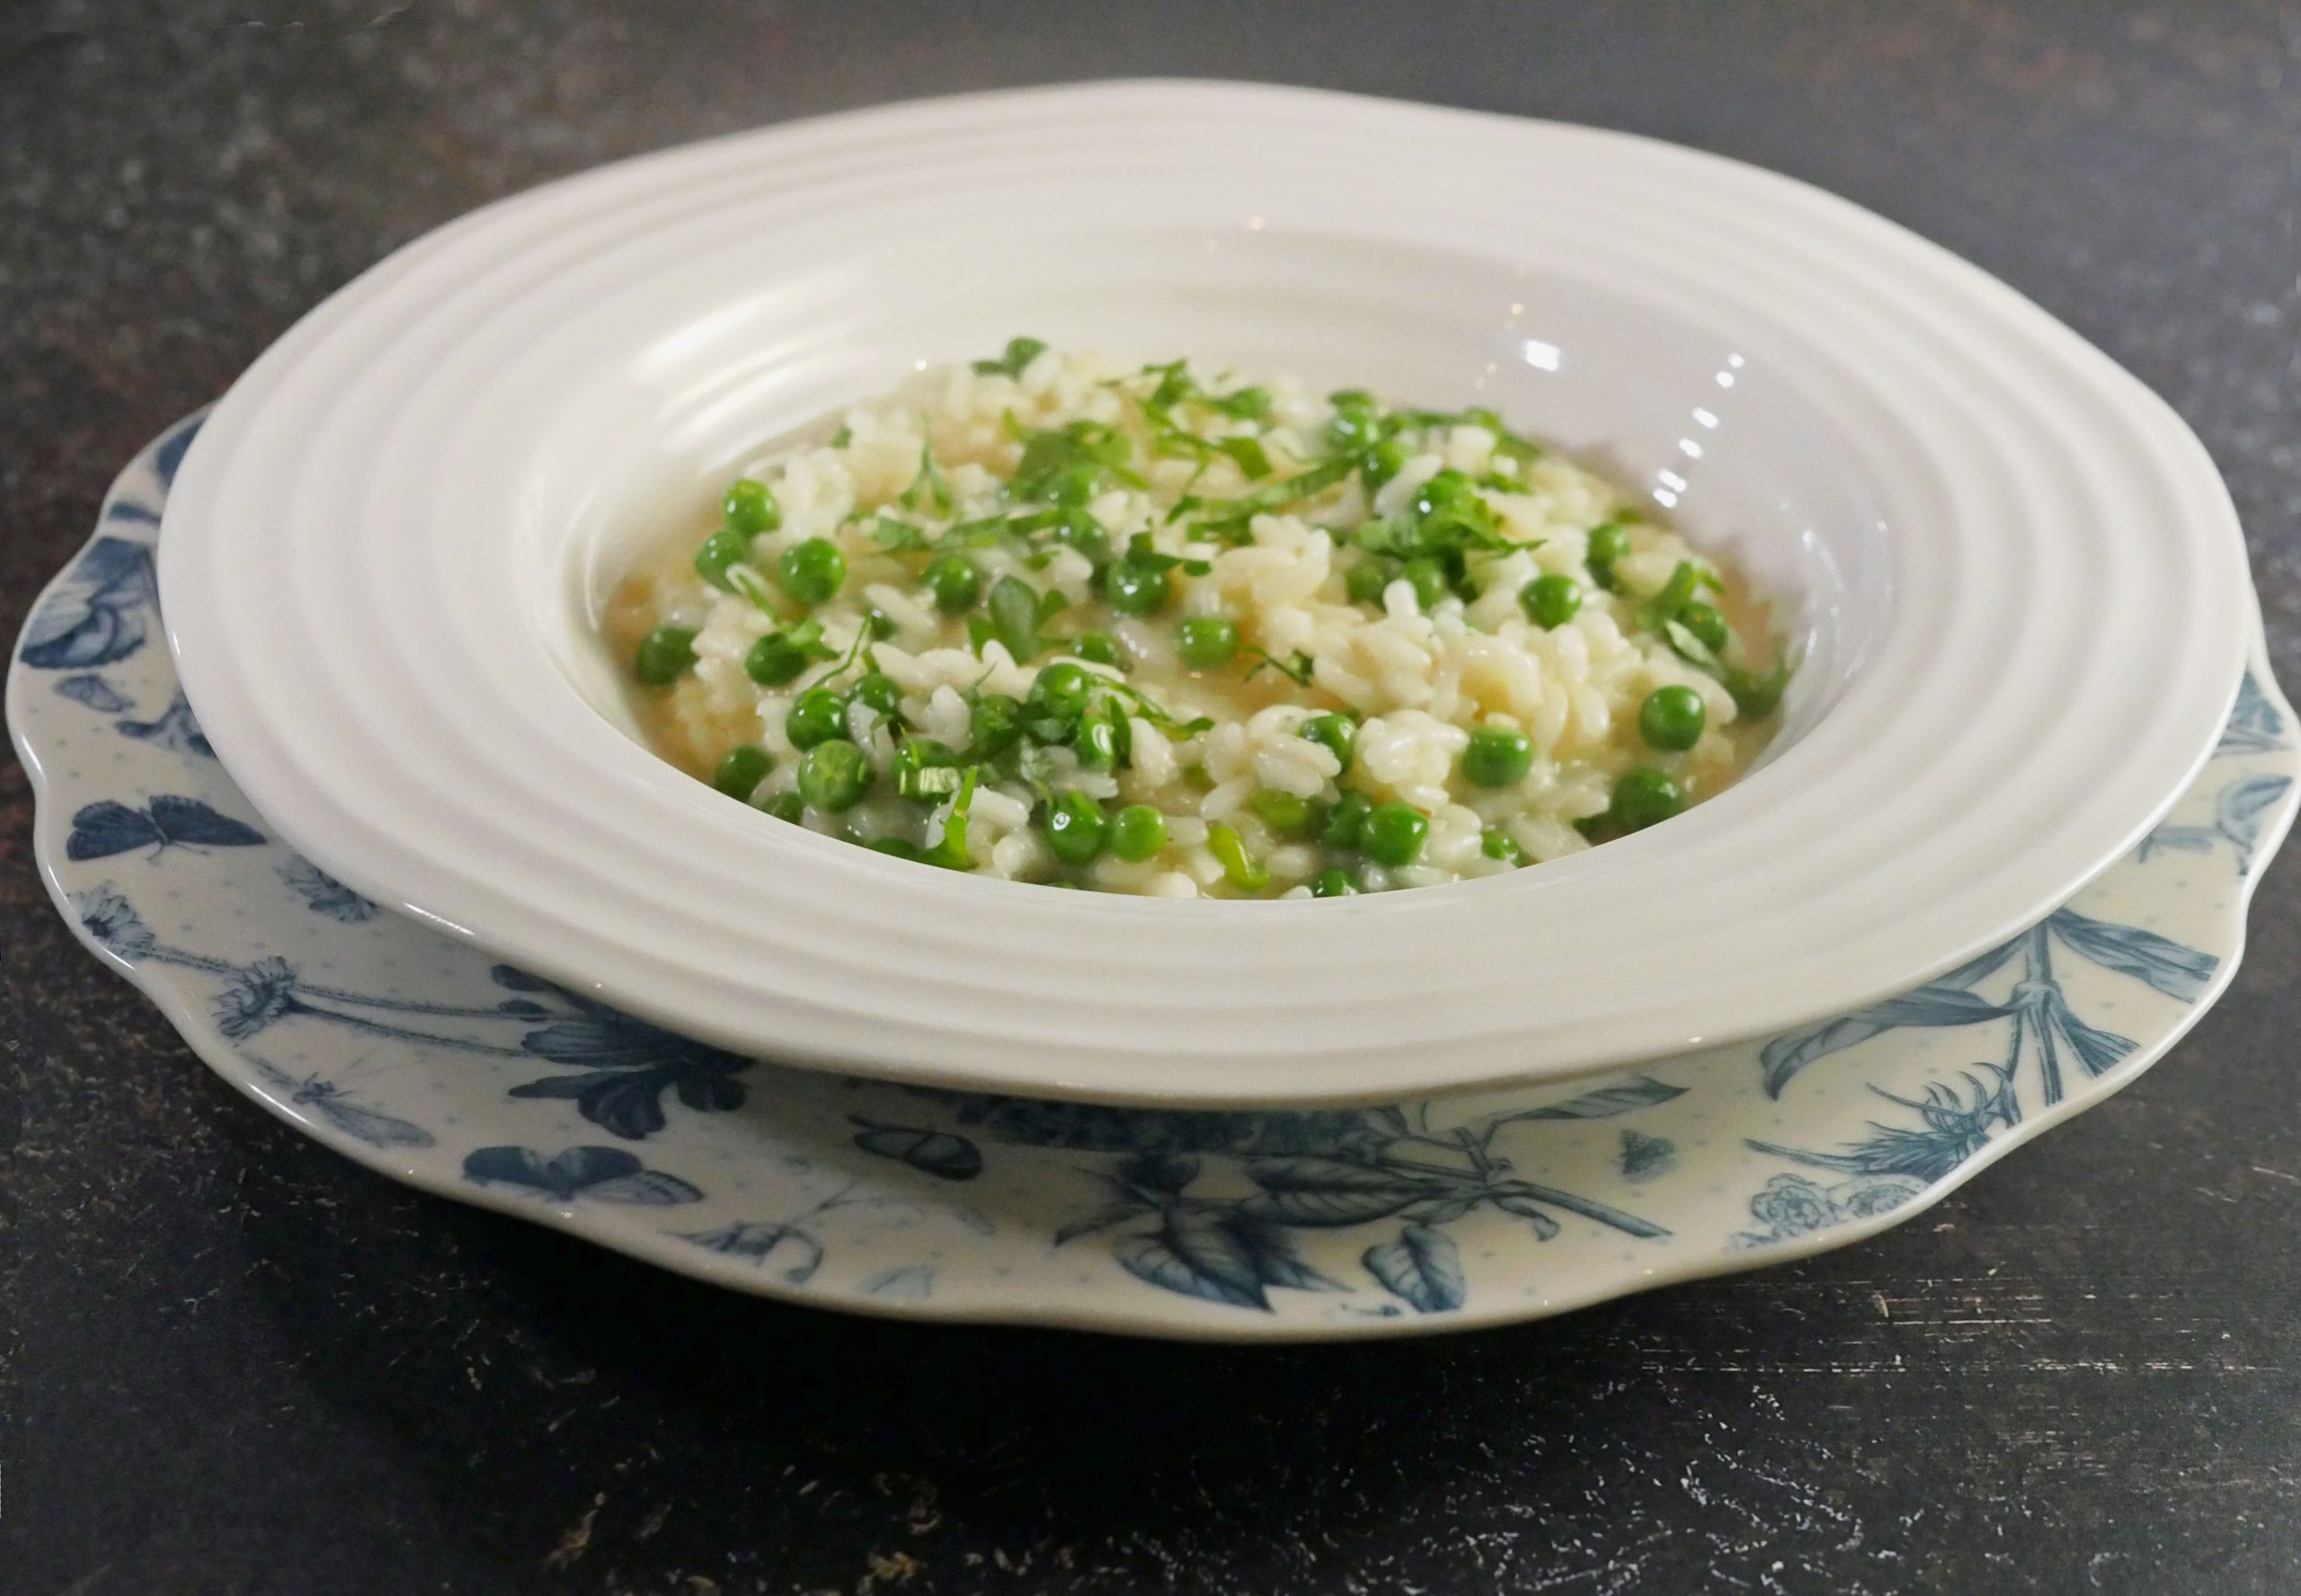 Pea and Parmesan Risotto